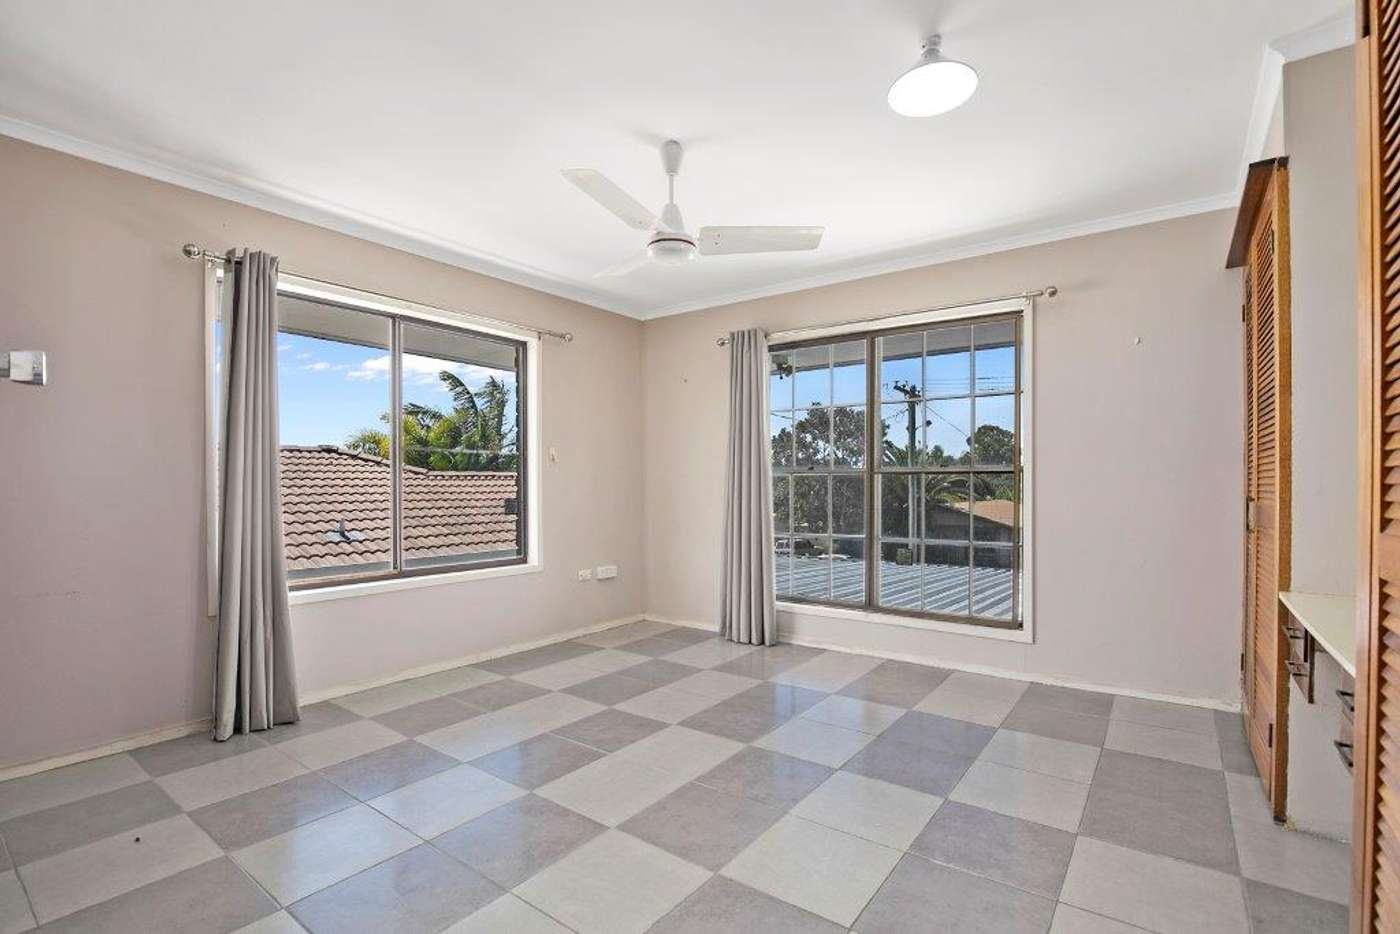 Sixth view of Homely house listing, 23 Holiday Parade, Scarness QLD 4655